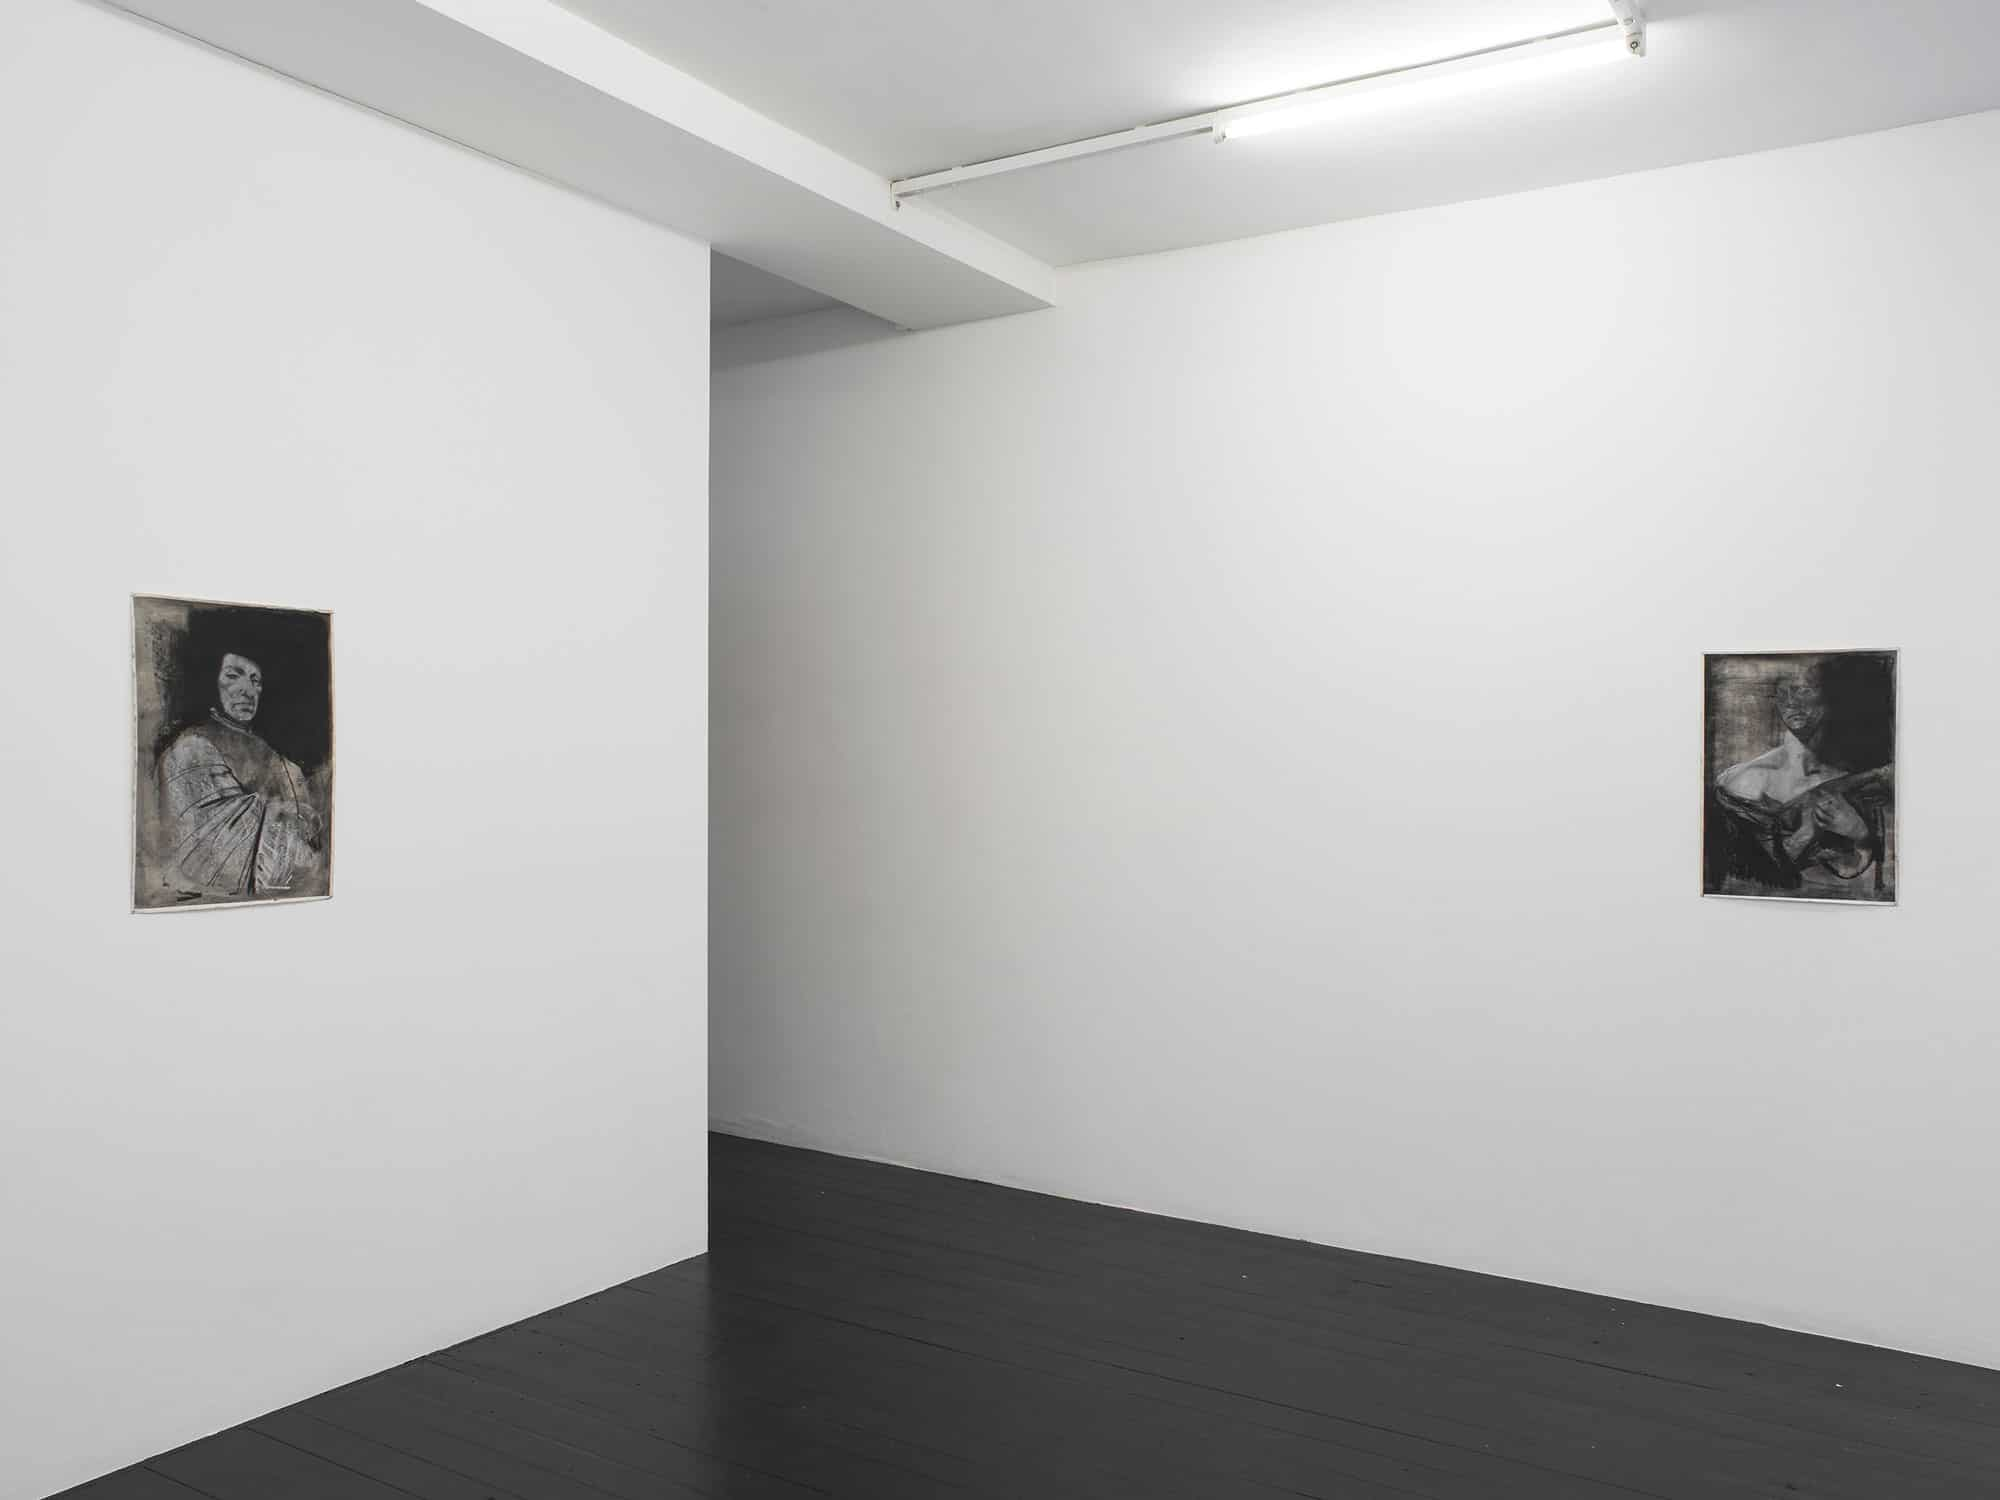 """Exhibition """"Welcome to the Country Where the Gypsy has been Hunted"""" by Krzysztof Gil, courtesy: l'etrangere, photo Andy Kaete"""